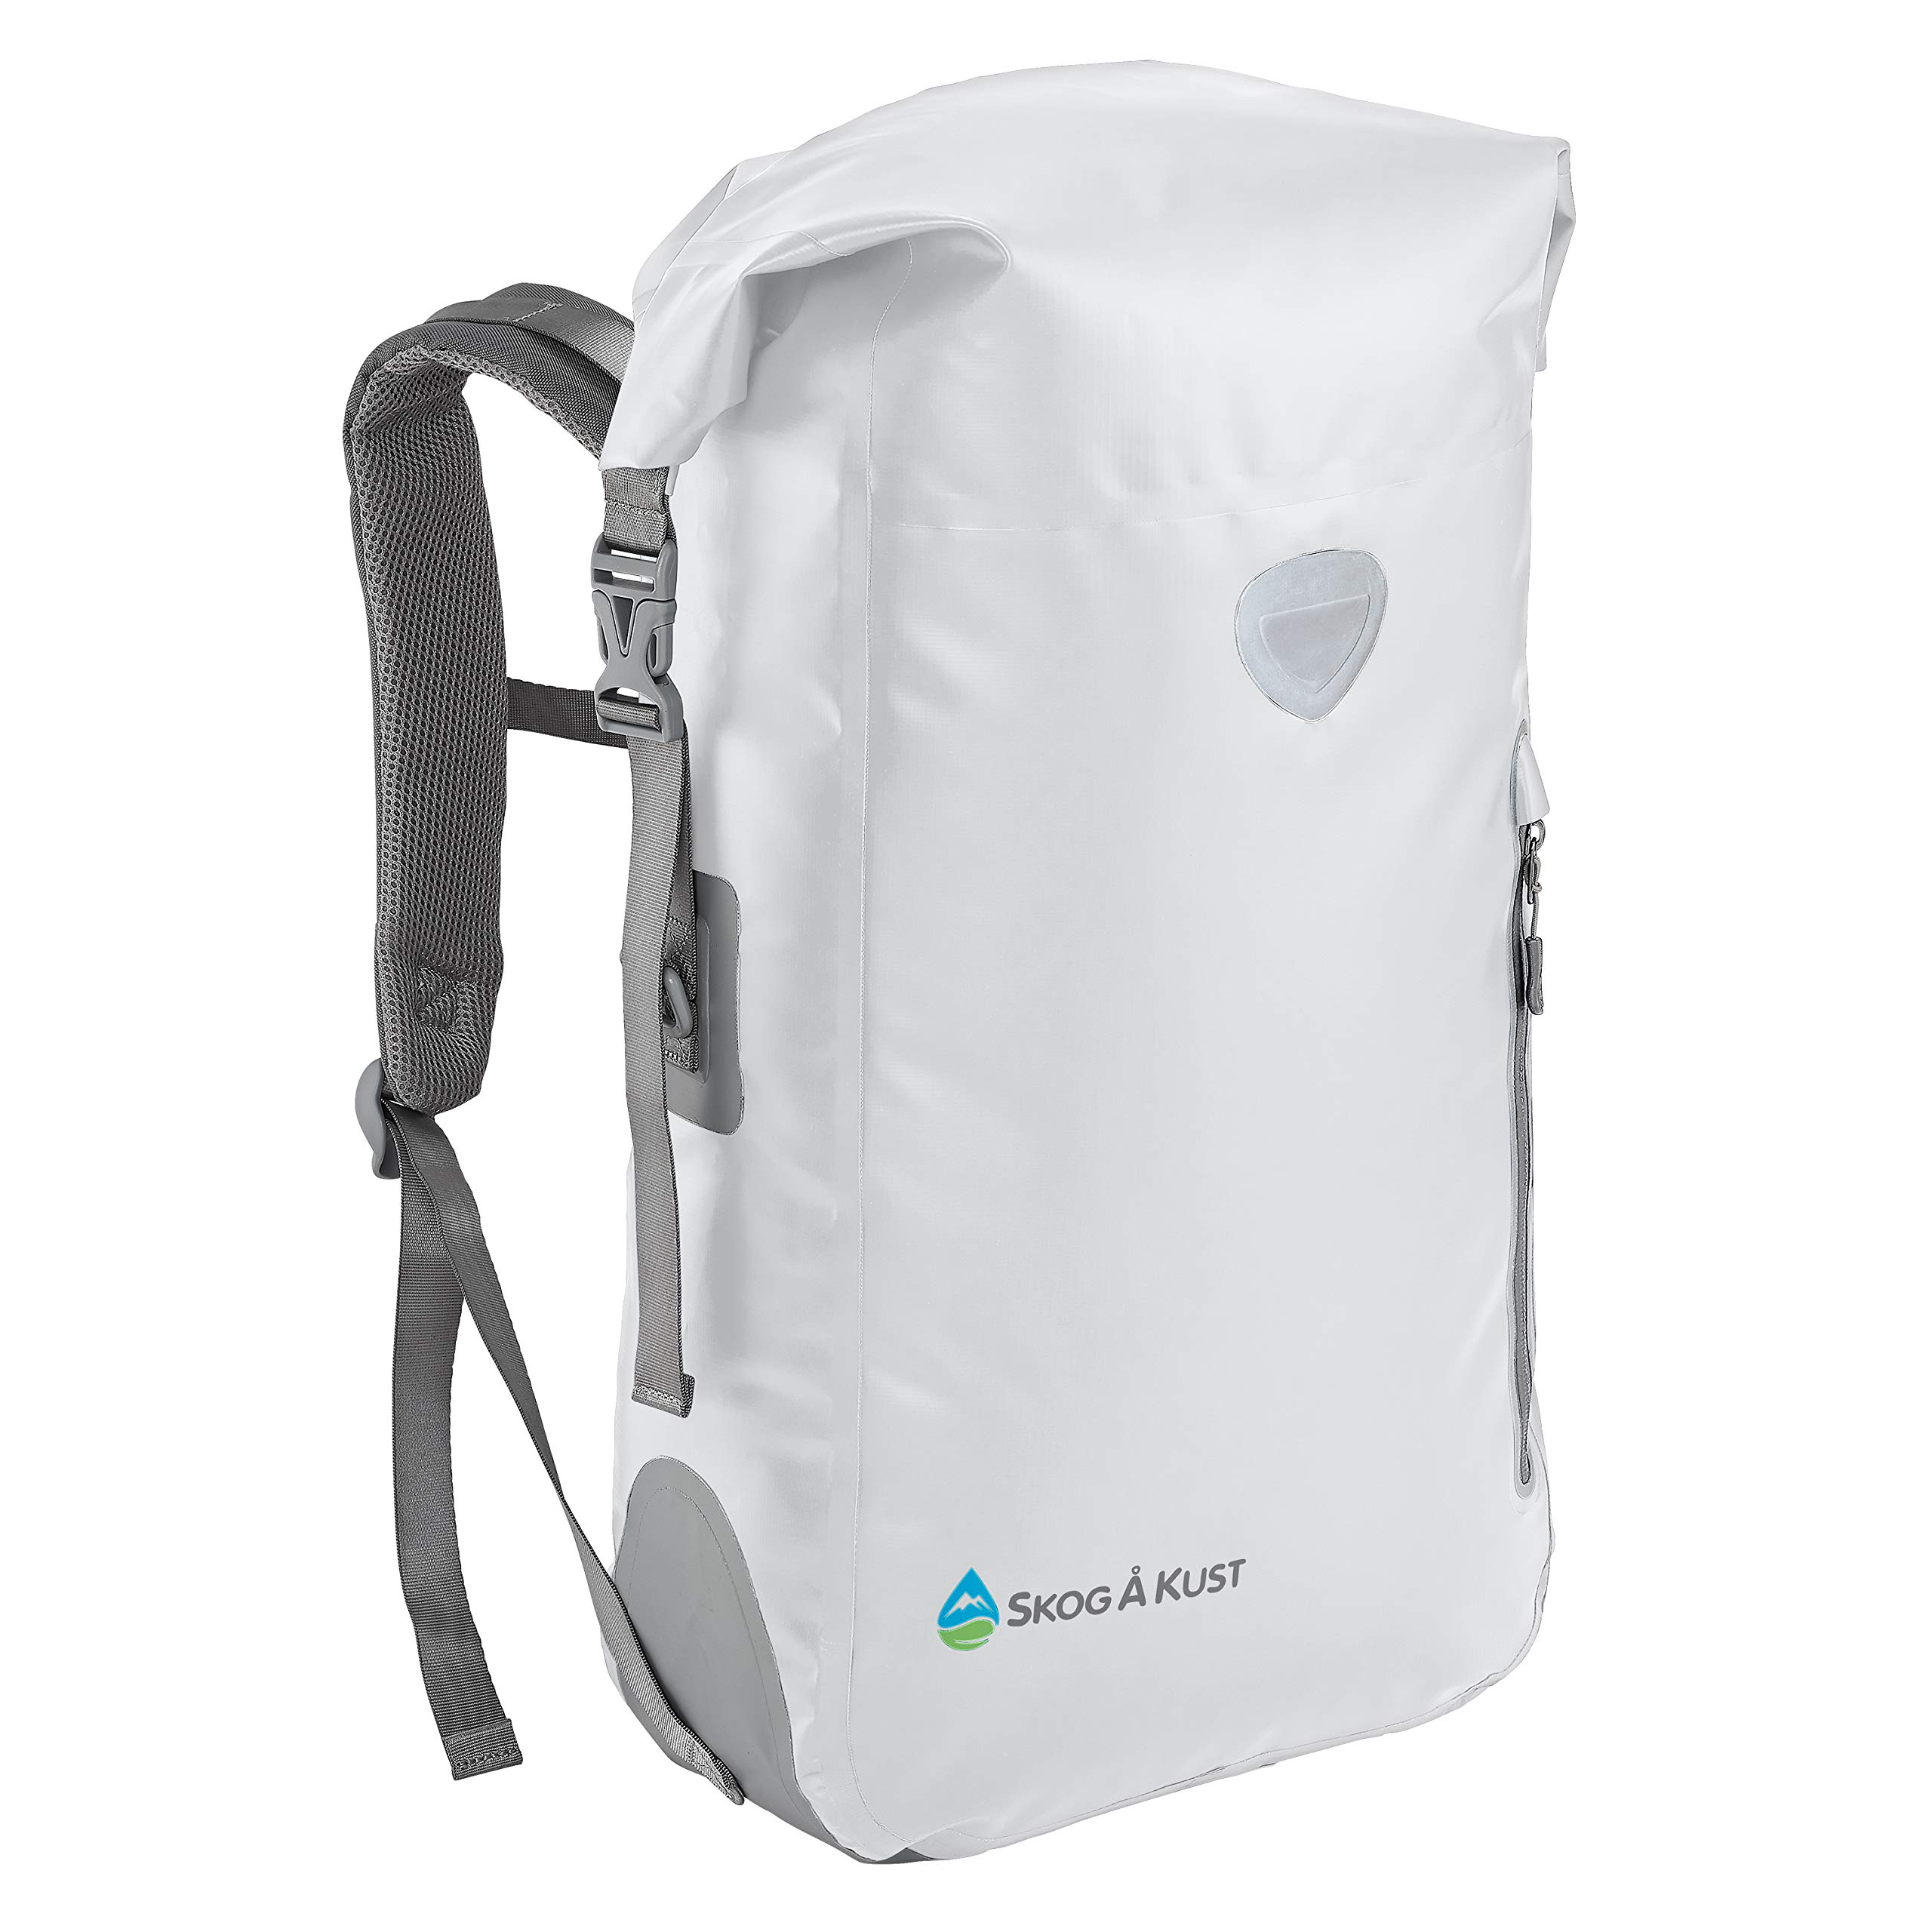 25a6af50b18 Best Rated in Marine Dry Bags   Helpful Customer Reviews - Amazon.com